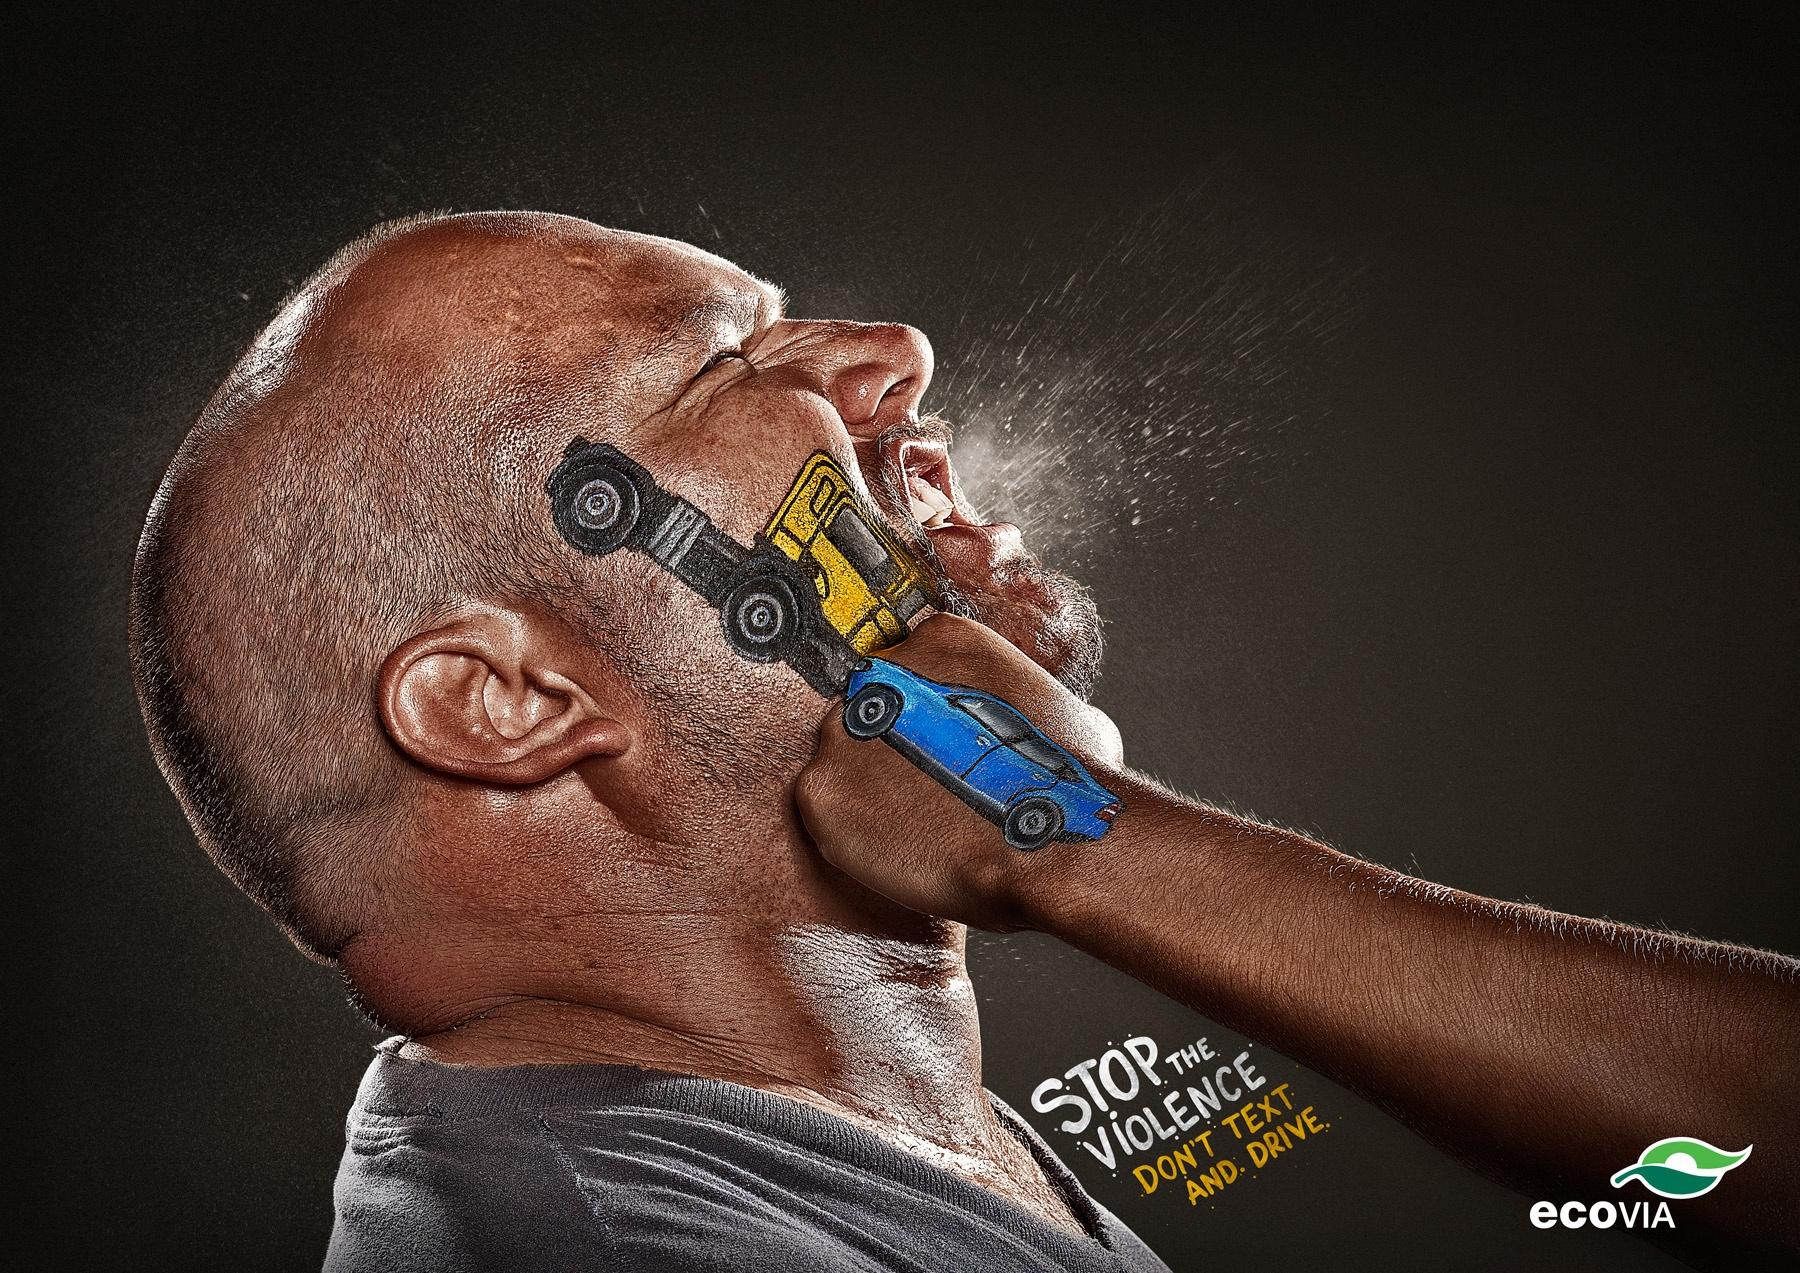 Ecovia Print Ad -  Stop the Violence, Don't text and drive